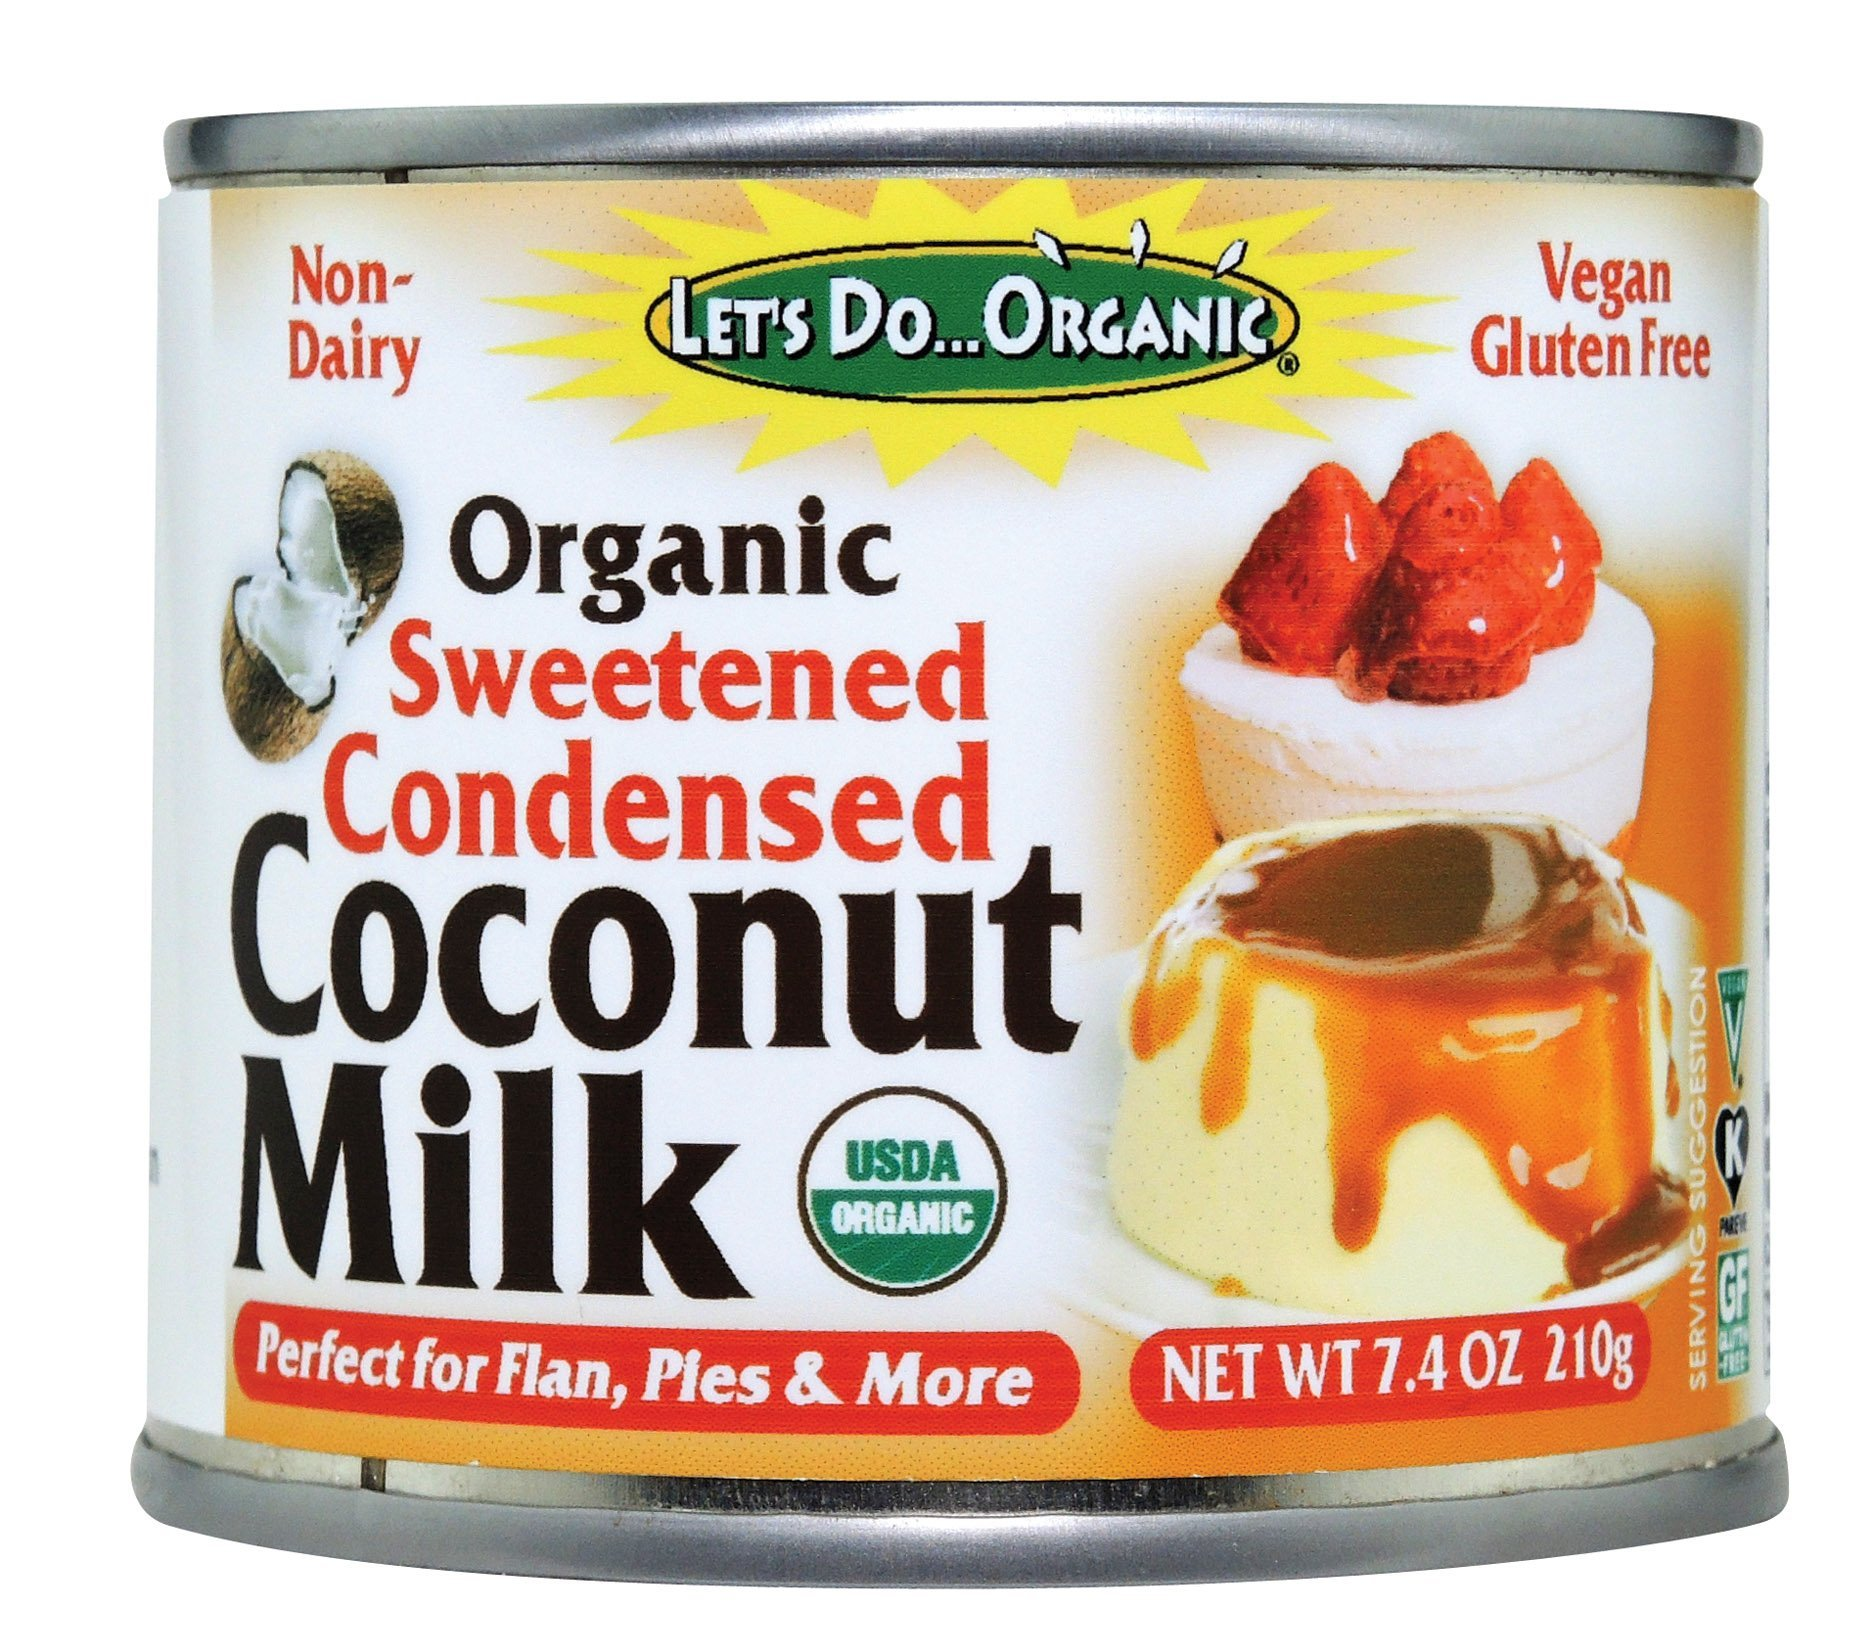 Let's Do Organic Sweetened Condensed Coconut Milk, 7.4 Ounce (Pack of 6)